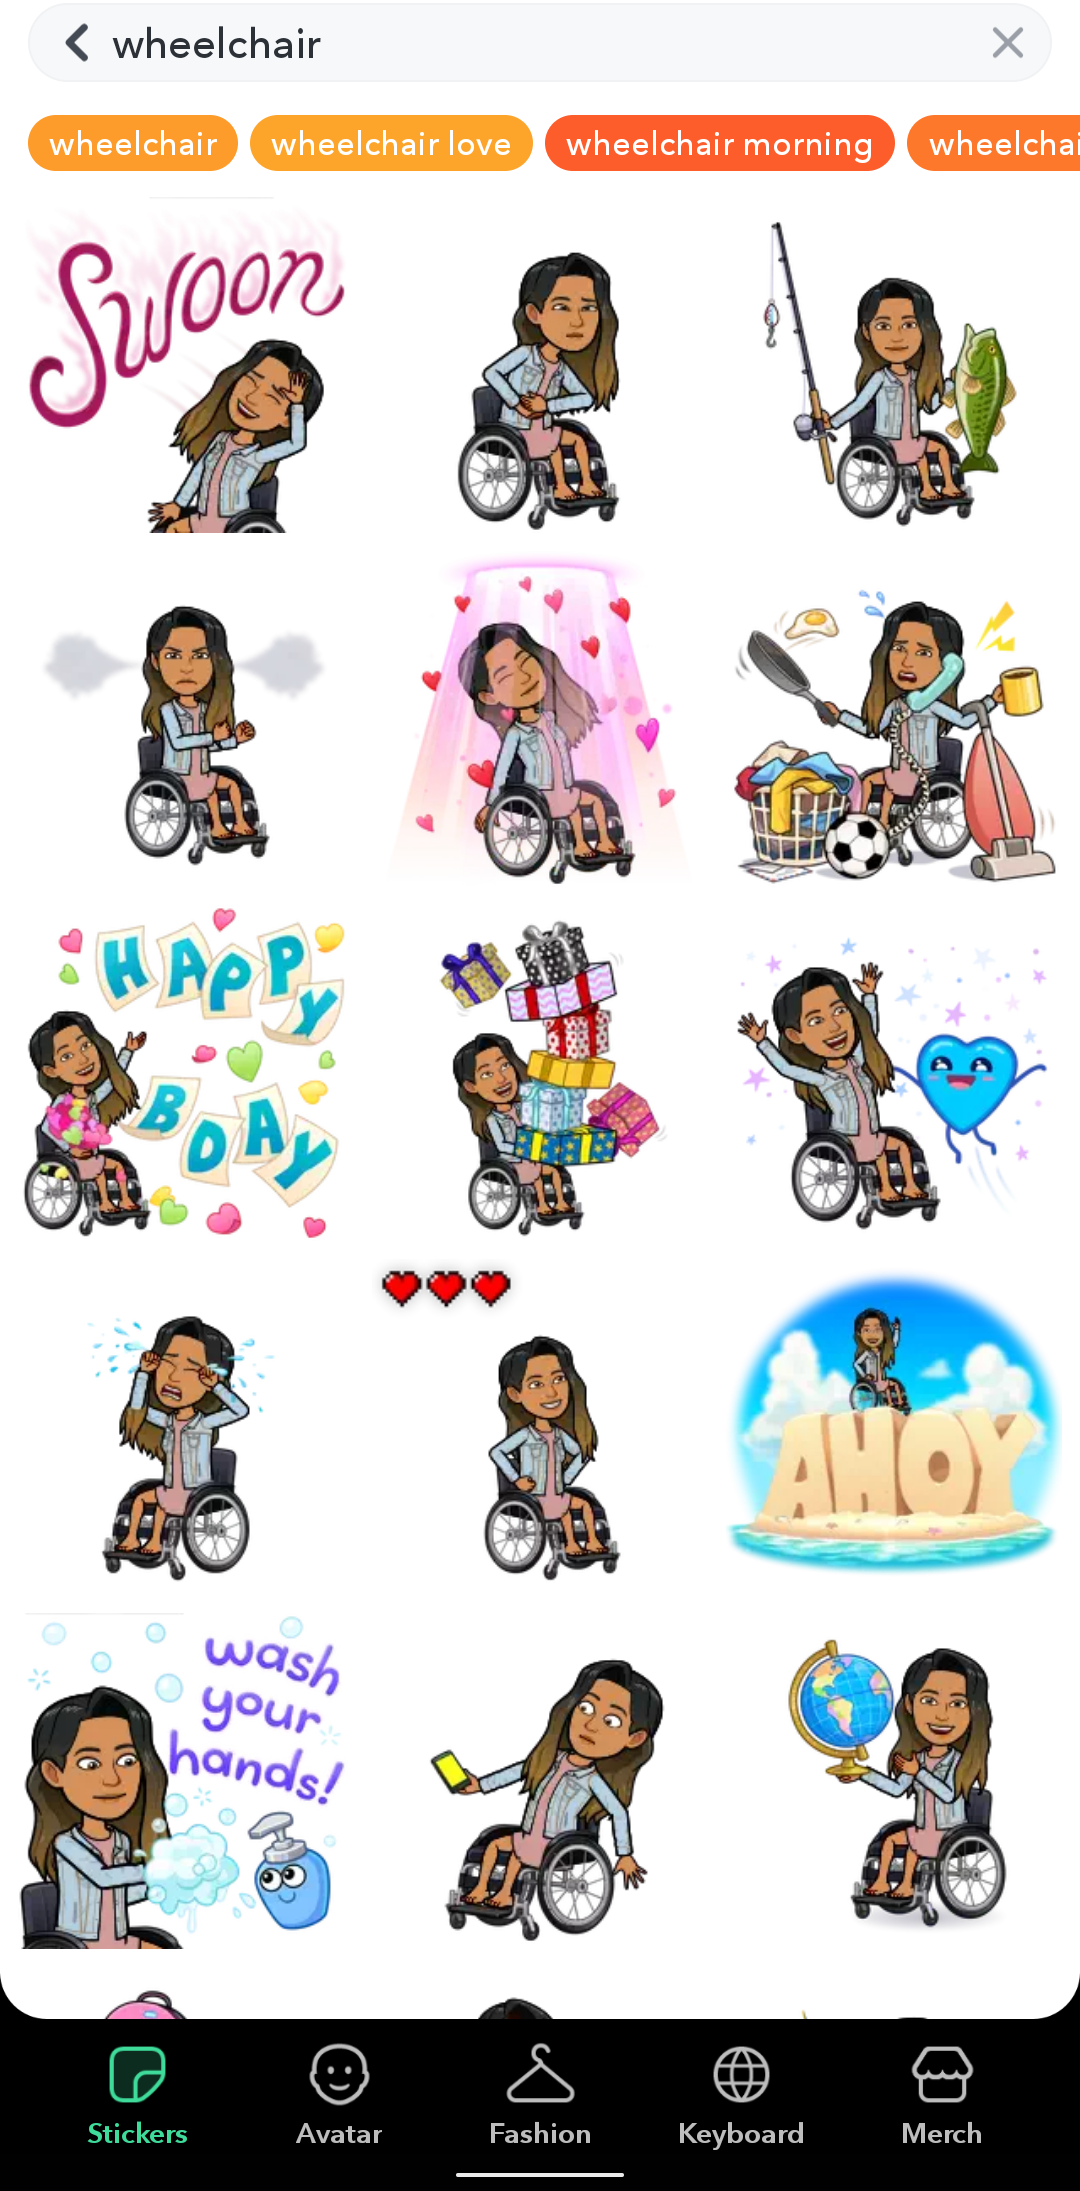 Selection of Bitmoji results of avatars with wheelchair